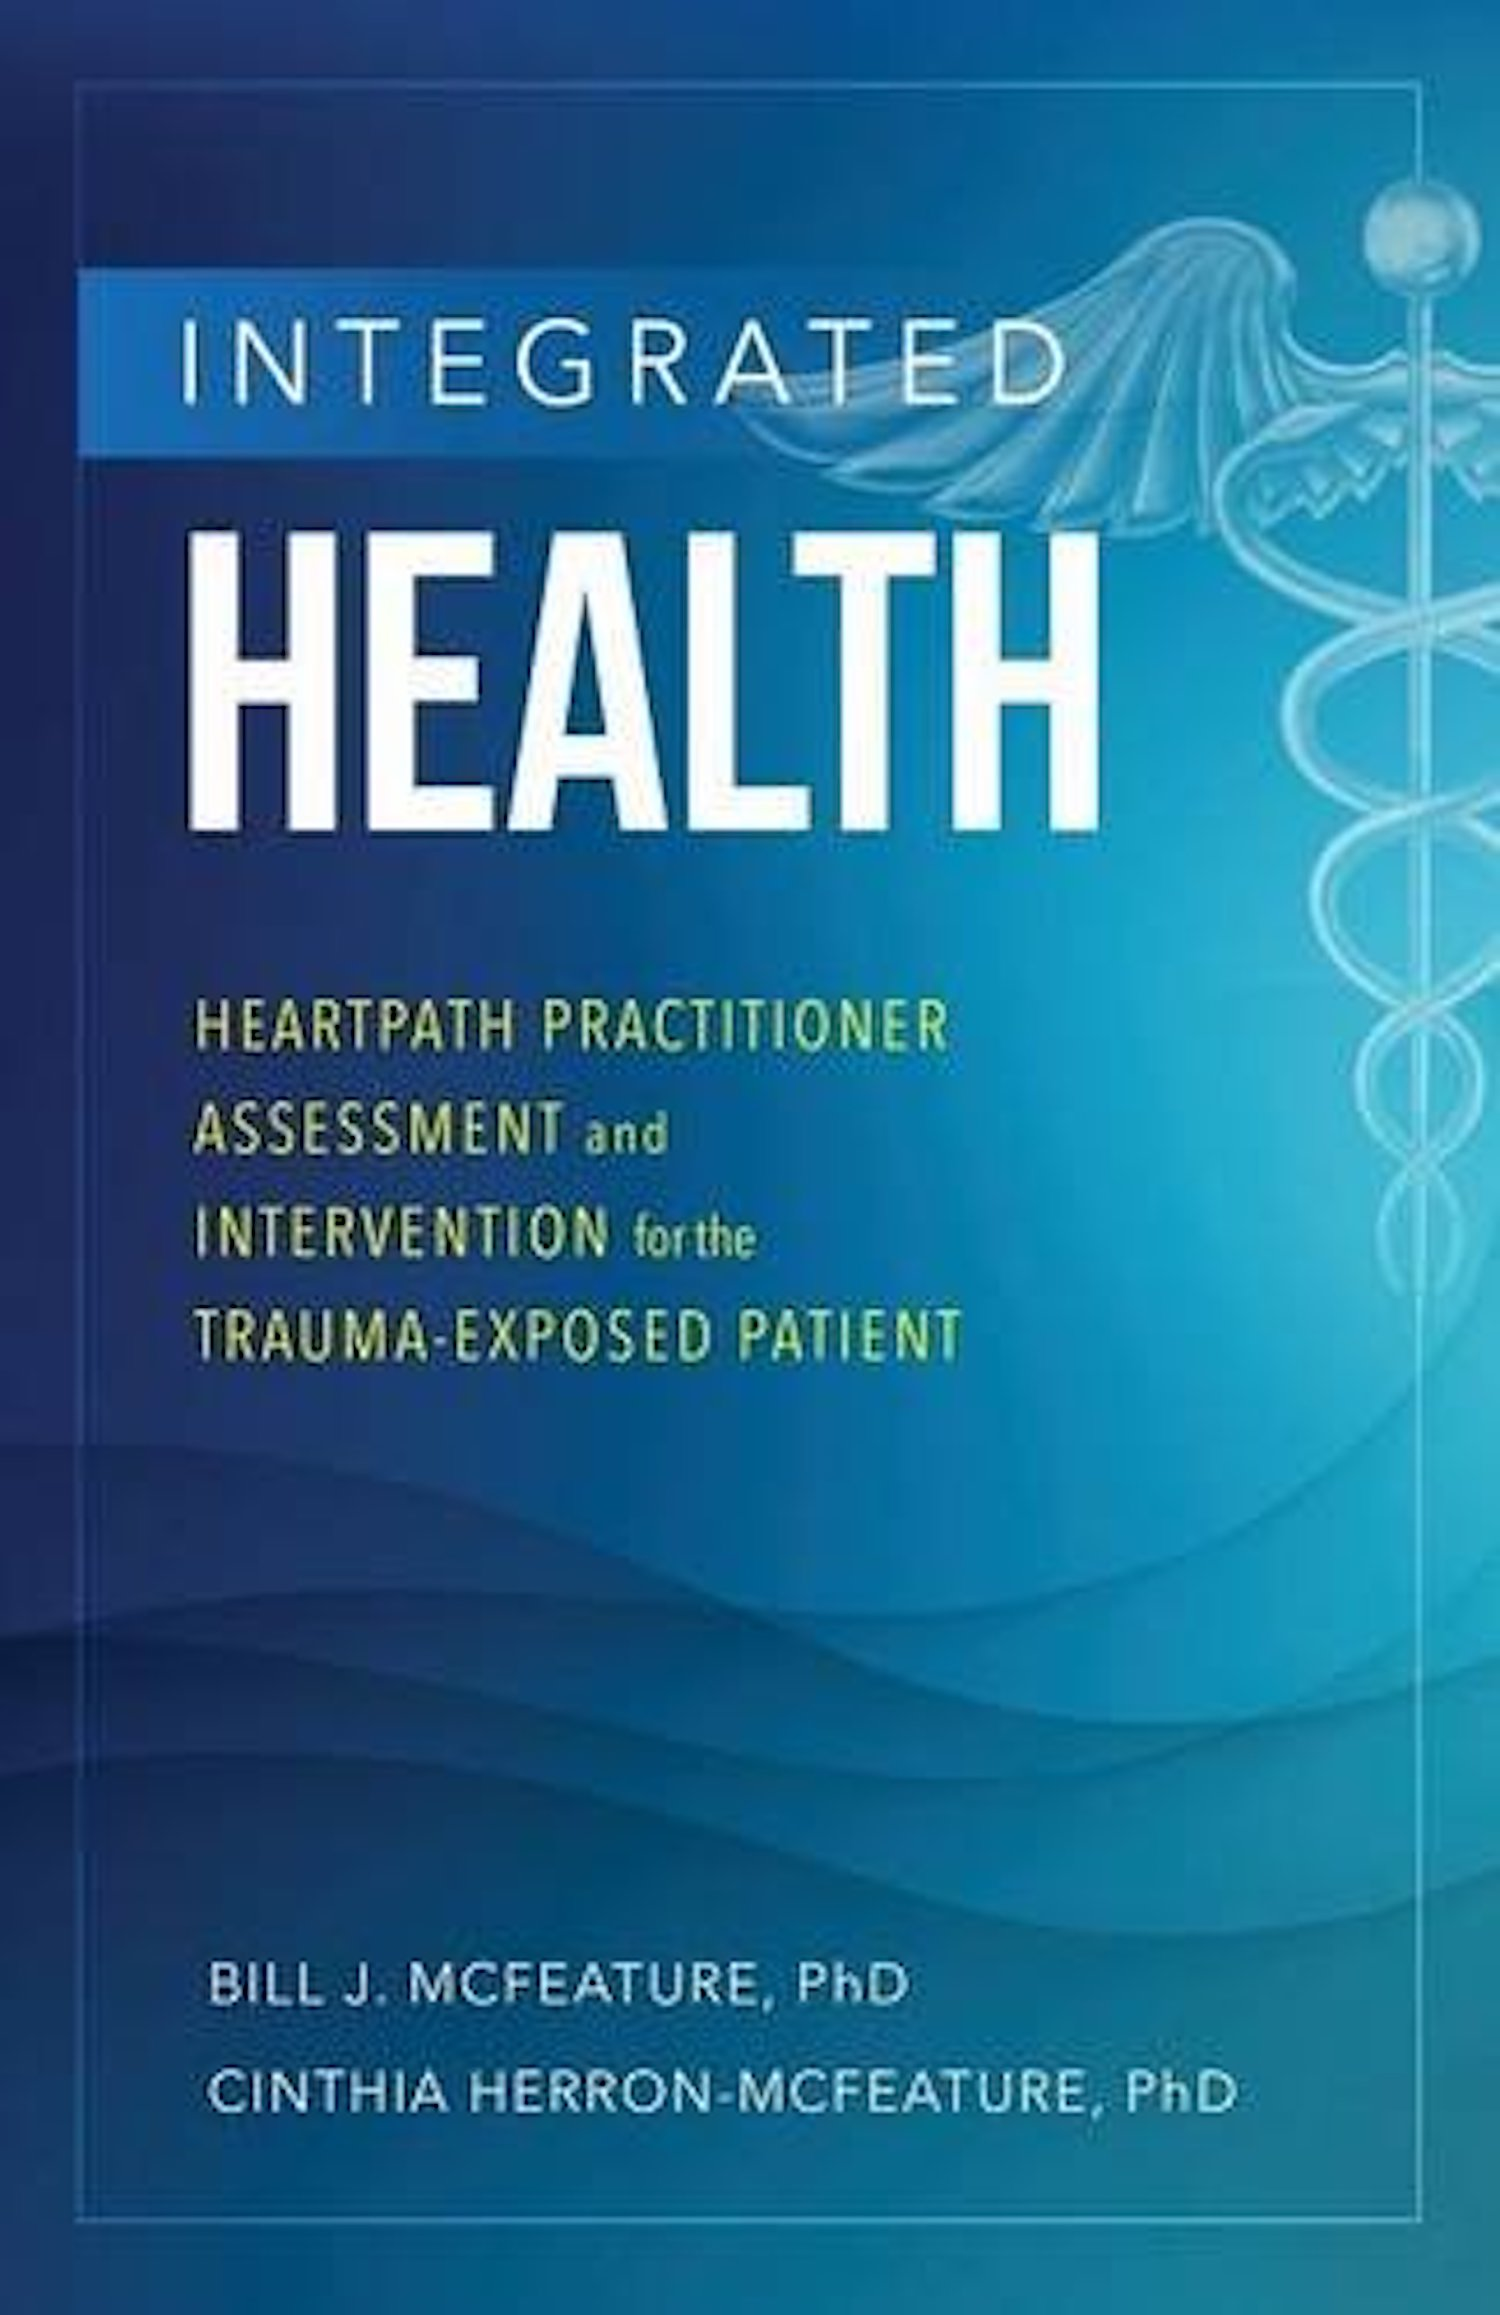 Integrated Health - HeartPath Practitioner Assessment and Intervention for the Trauma Exposed Patient